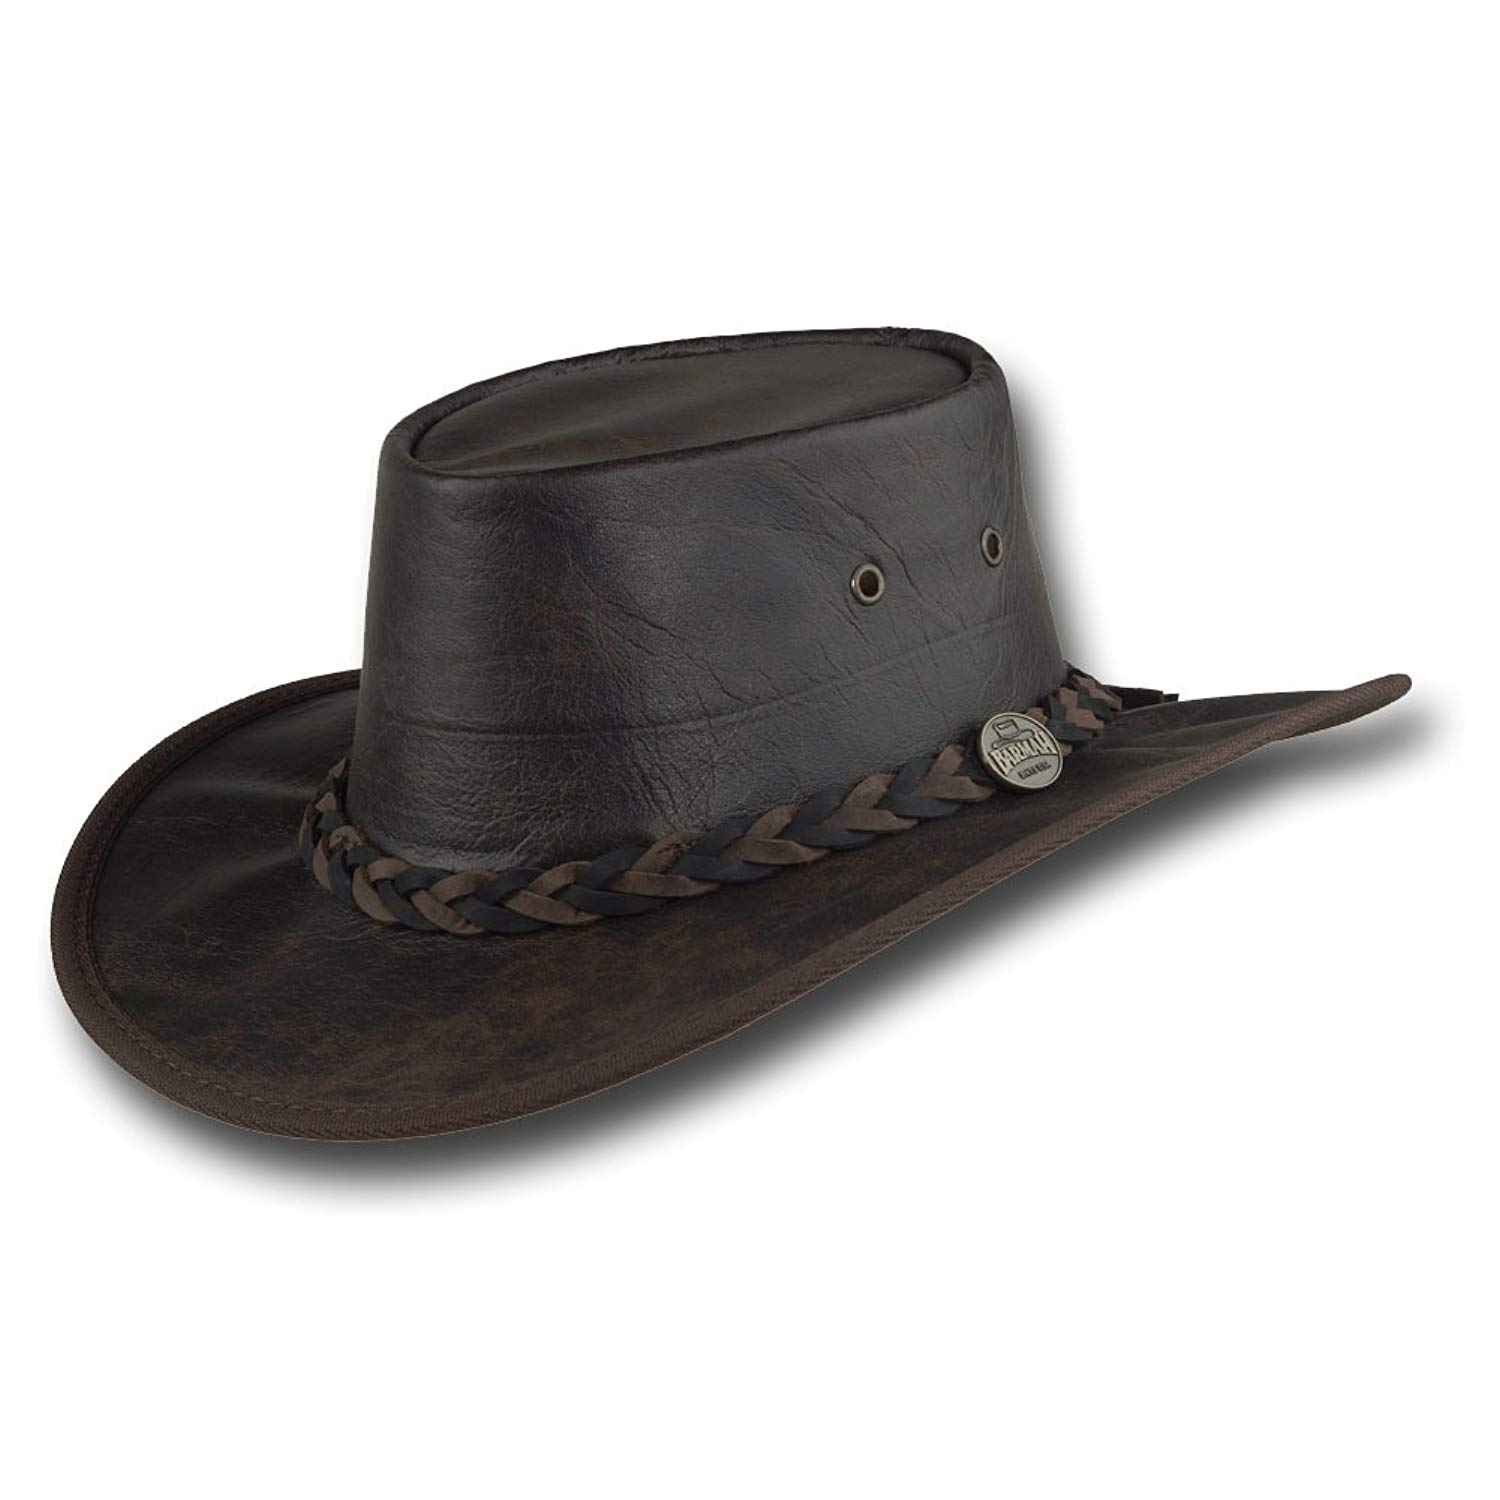 25e016091219f Wholesale Cowboy Hats Suede PU Leather Assorted Western Hats (Pack of 24).  Get Quotations · Barmah Hats Vintage Kangaroo Leather Hat - Item 1018